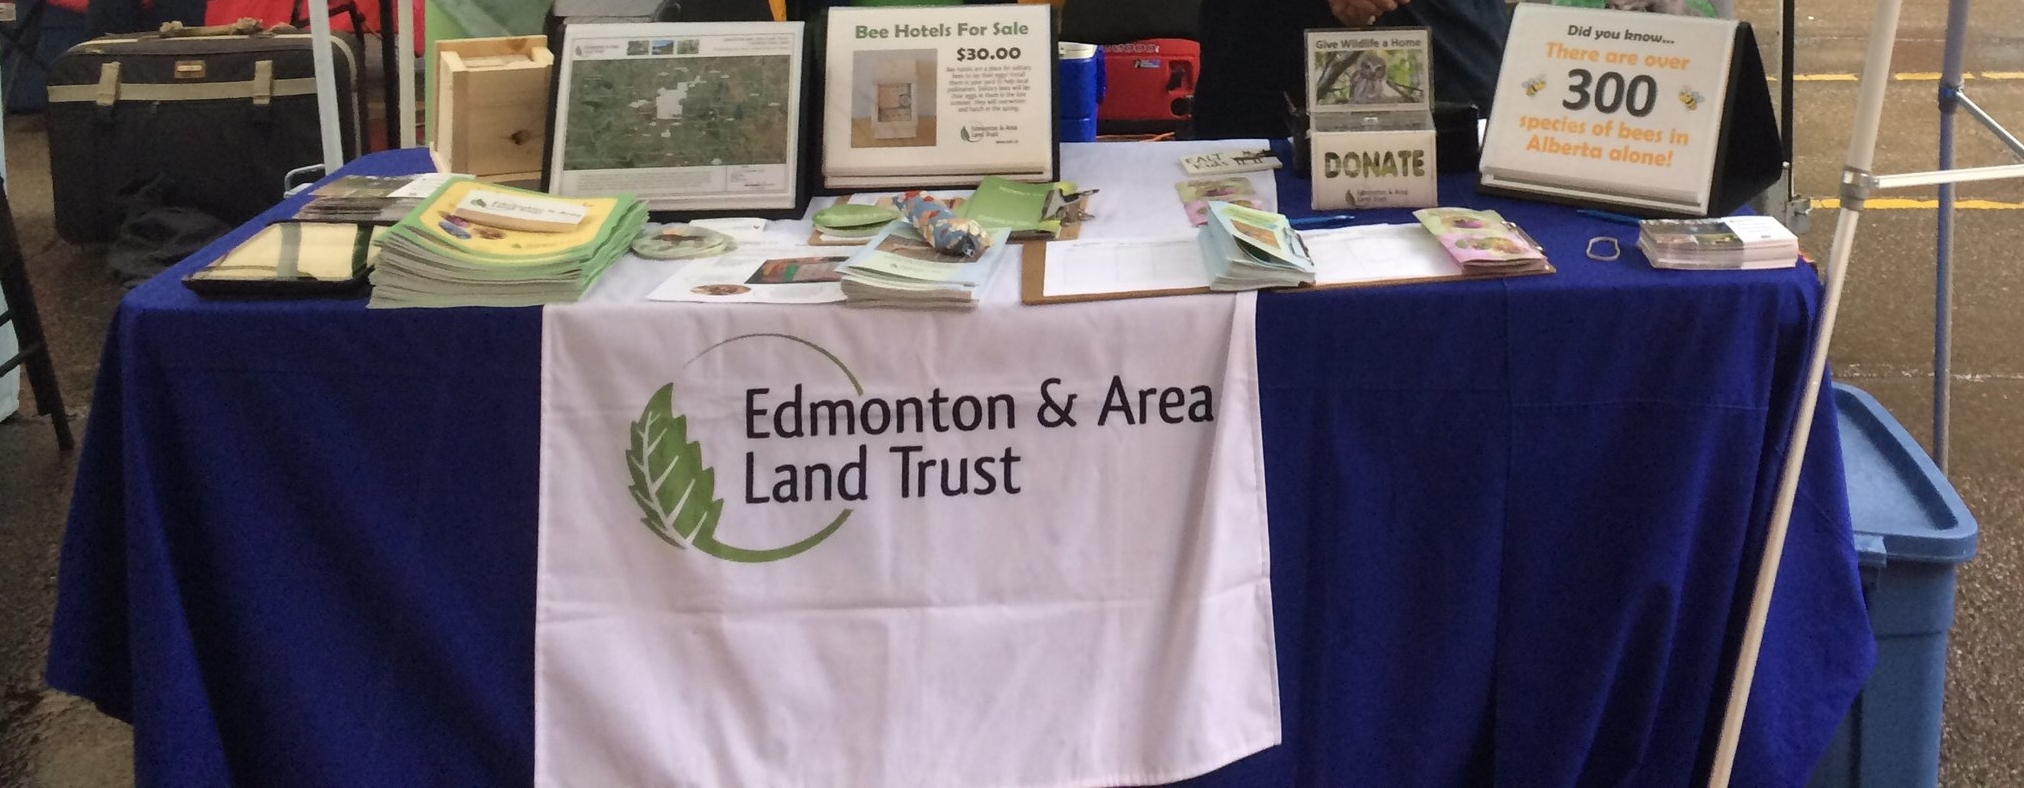 Edmonton and Area Land Trust sells bee hotels for $30 and also hosts workshops for people who want to build their own.